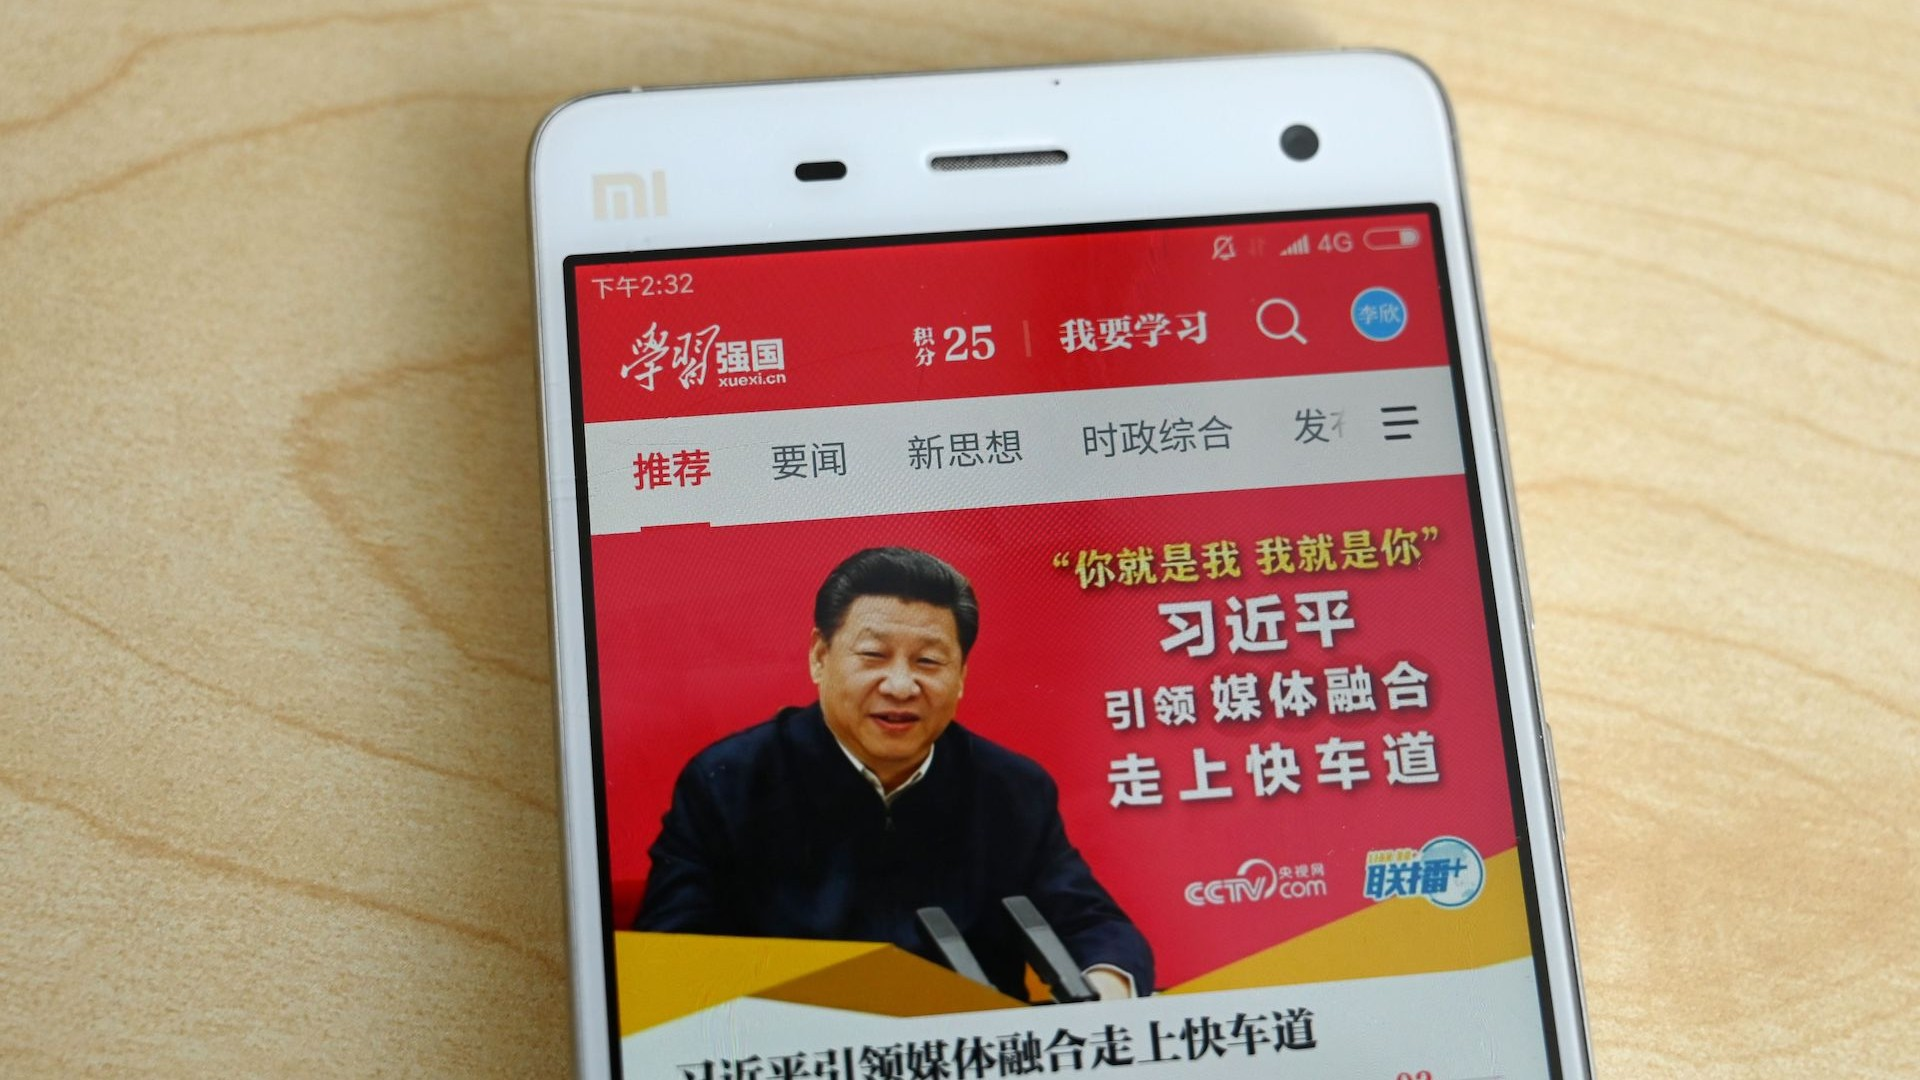 China's new top app rewards users for consuming Communist Party propaganda